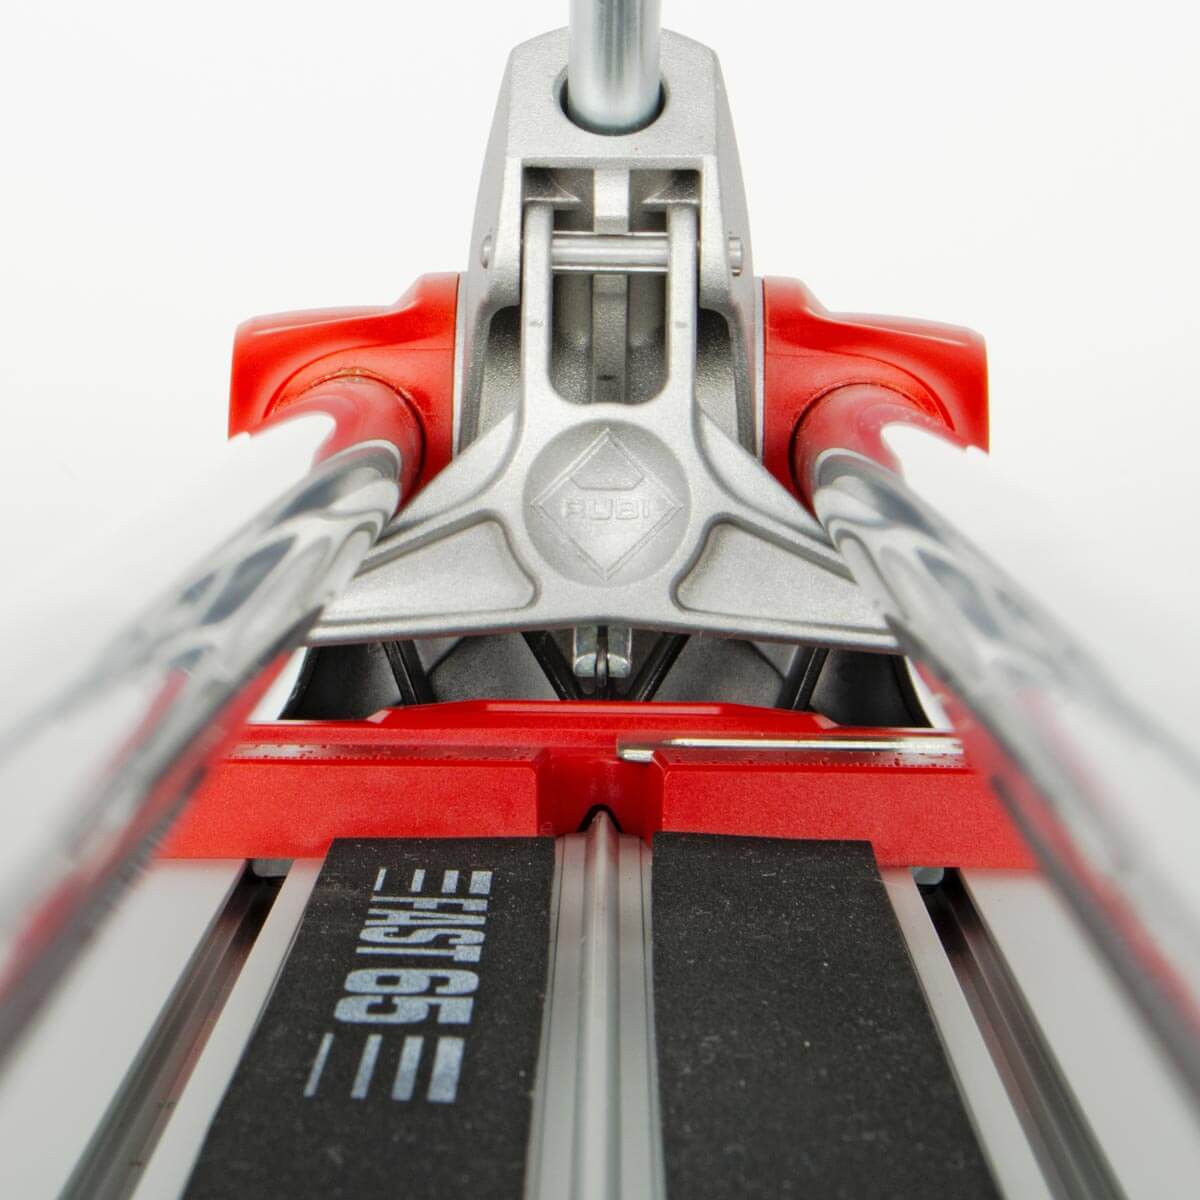 Rubi FAST lateral tile support